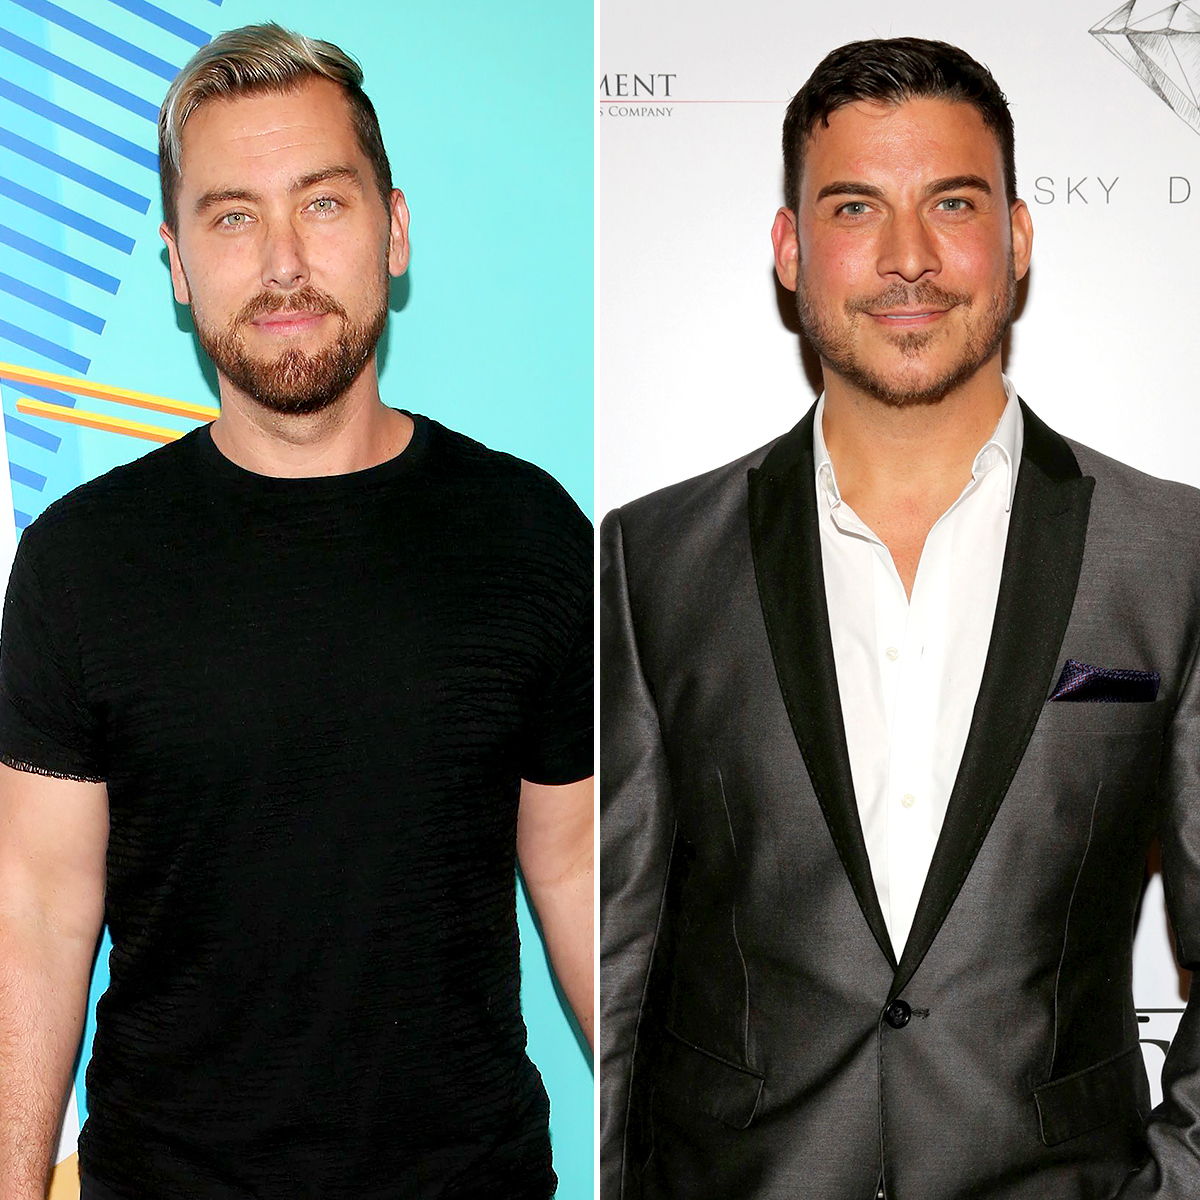 Lance Bass Is Disappointed With Jax Taylor After Racist Comments